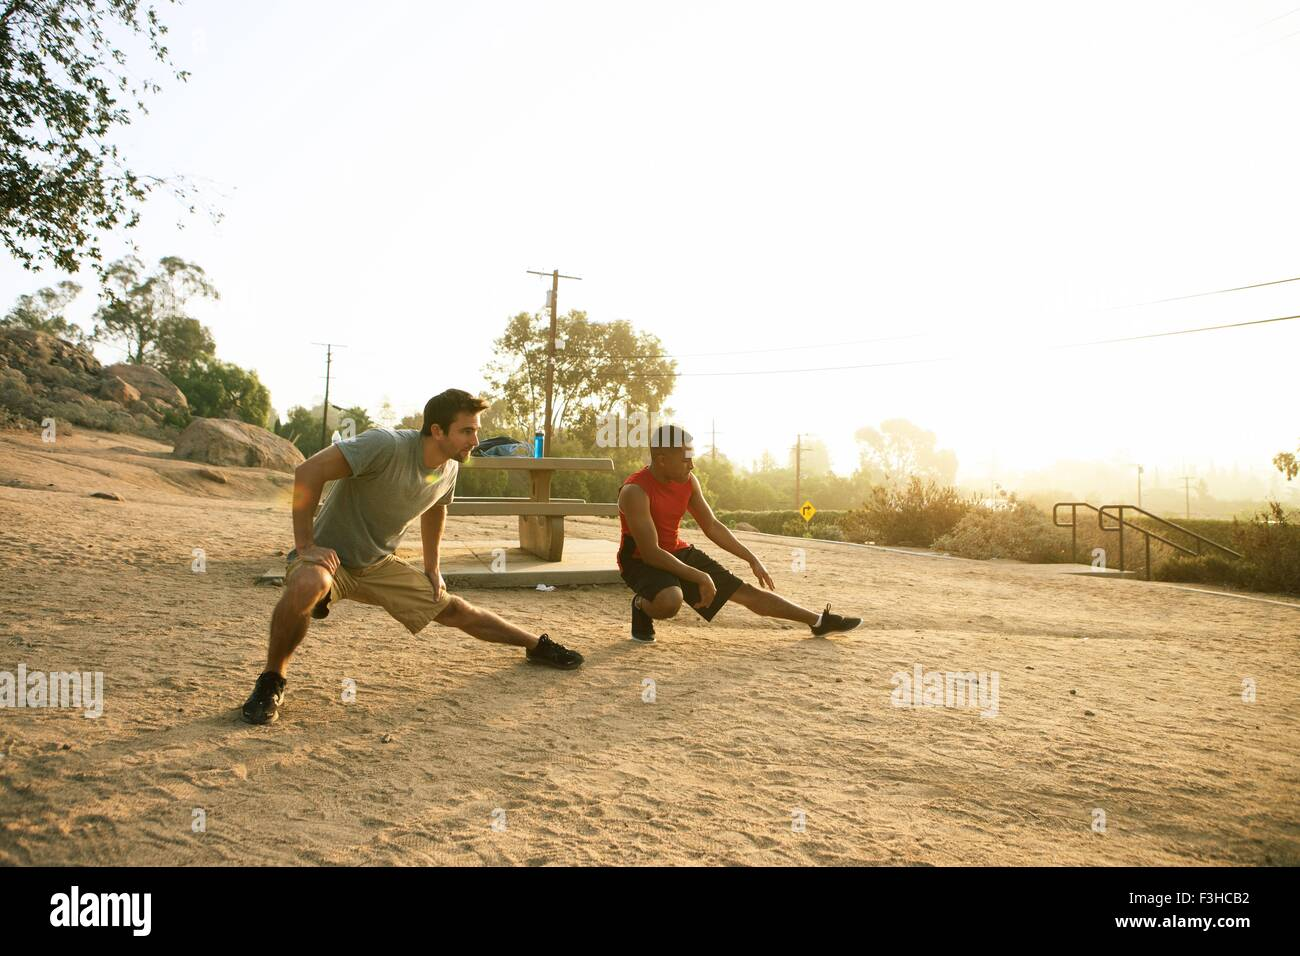 Two male friends working out together, outdoors - Stock Image